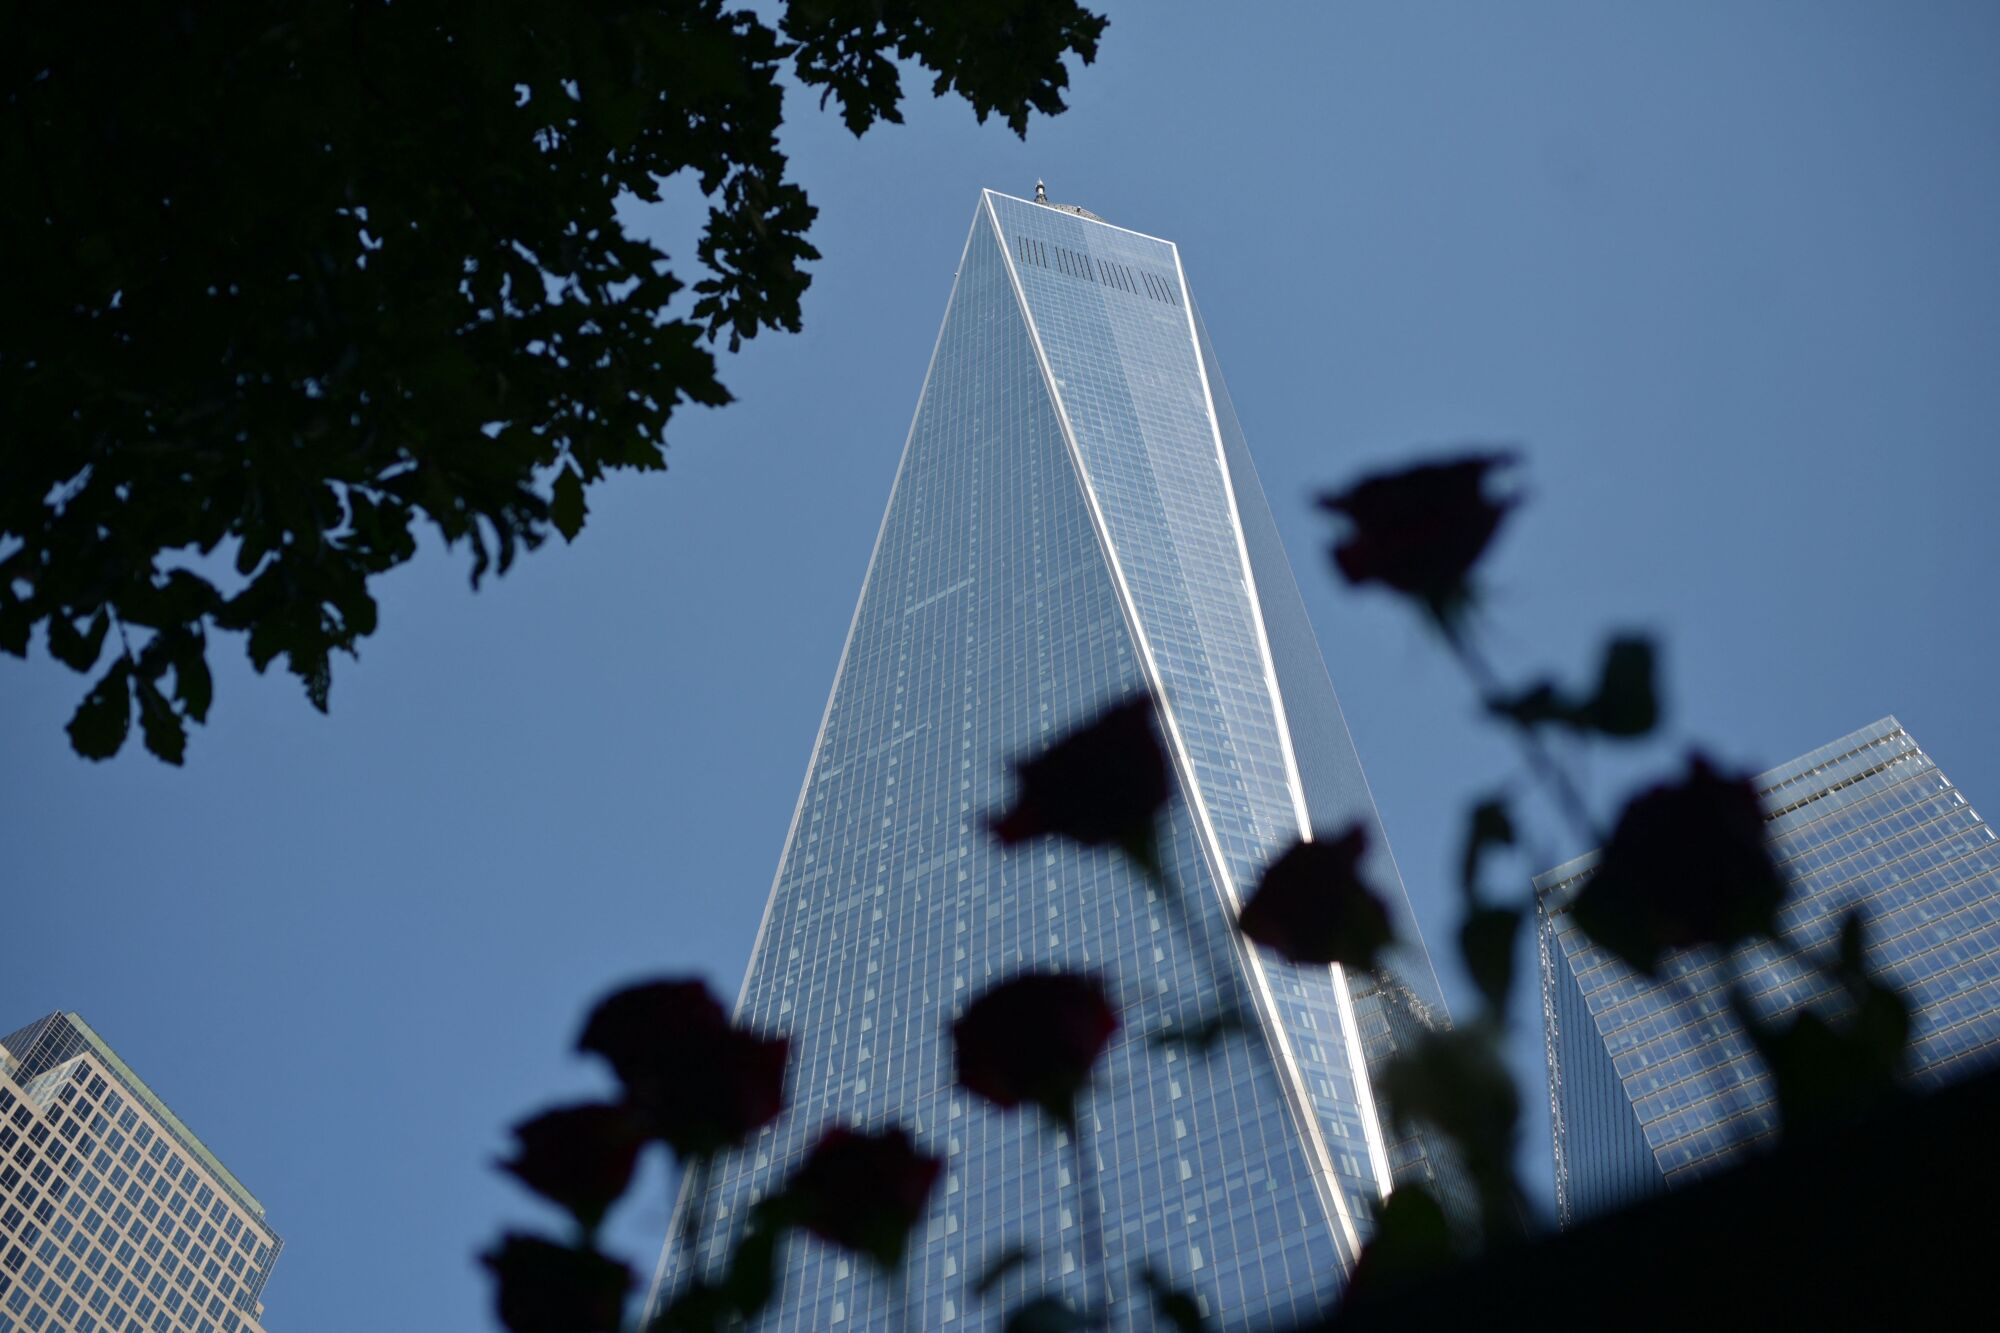 Freedom Tower is seen against a blue sky and amid other buildings